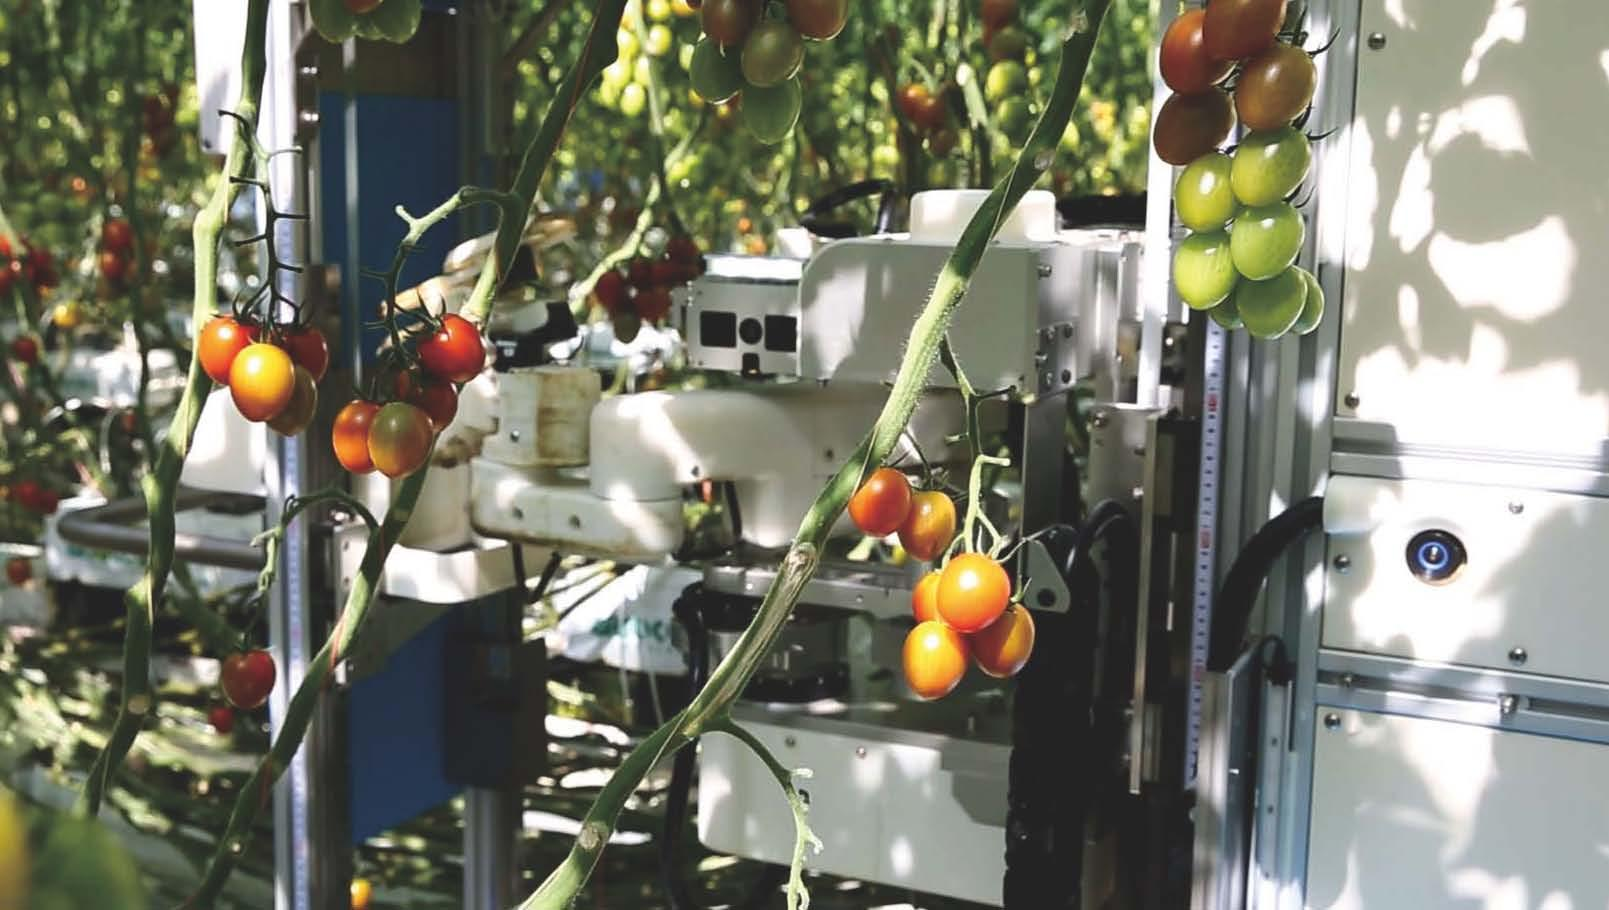 Introducing AI-equipped Tomato Harvesting Robots to Farms